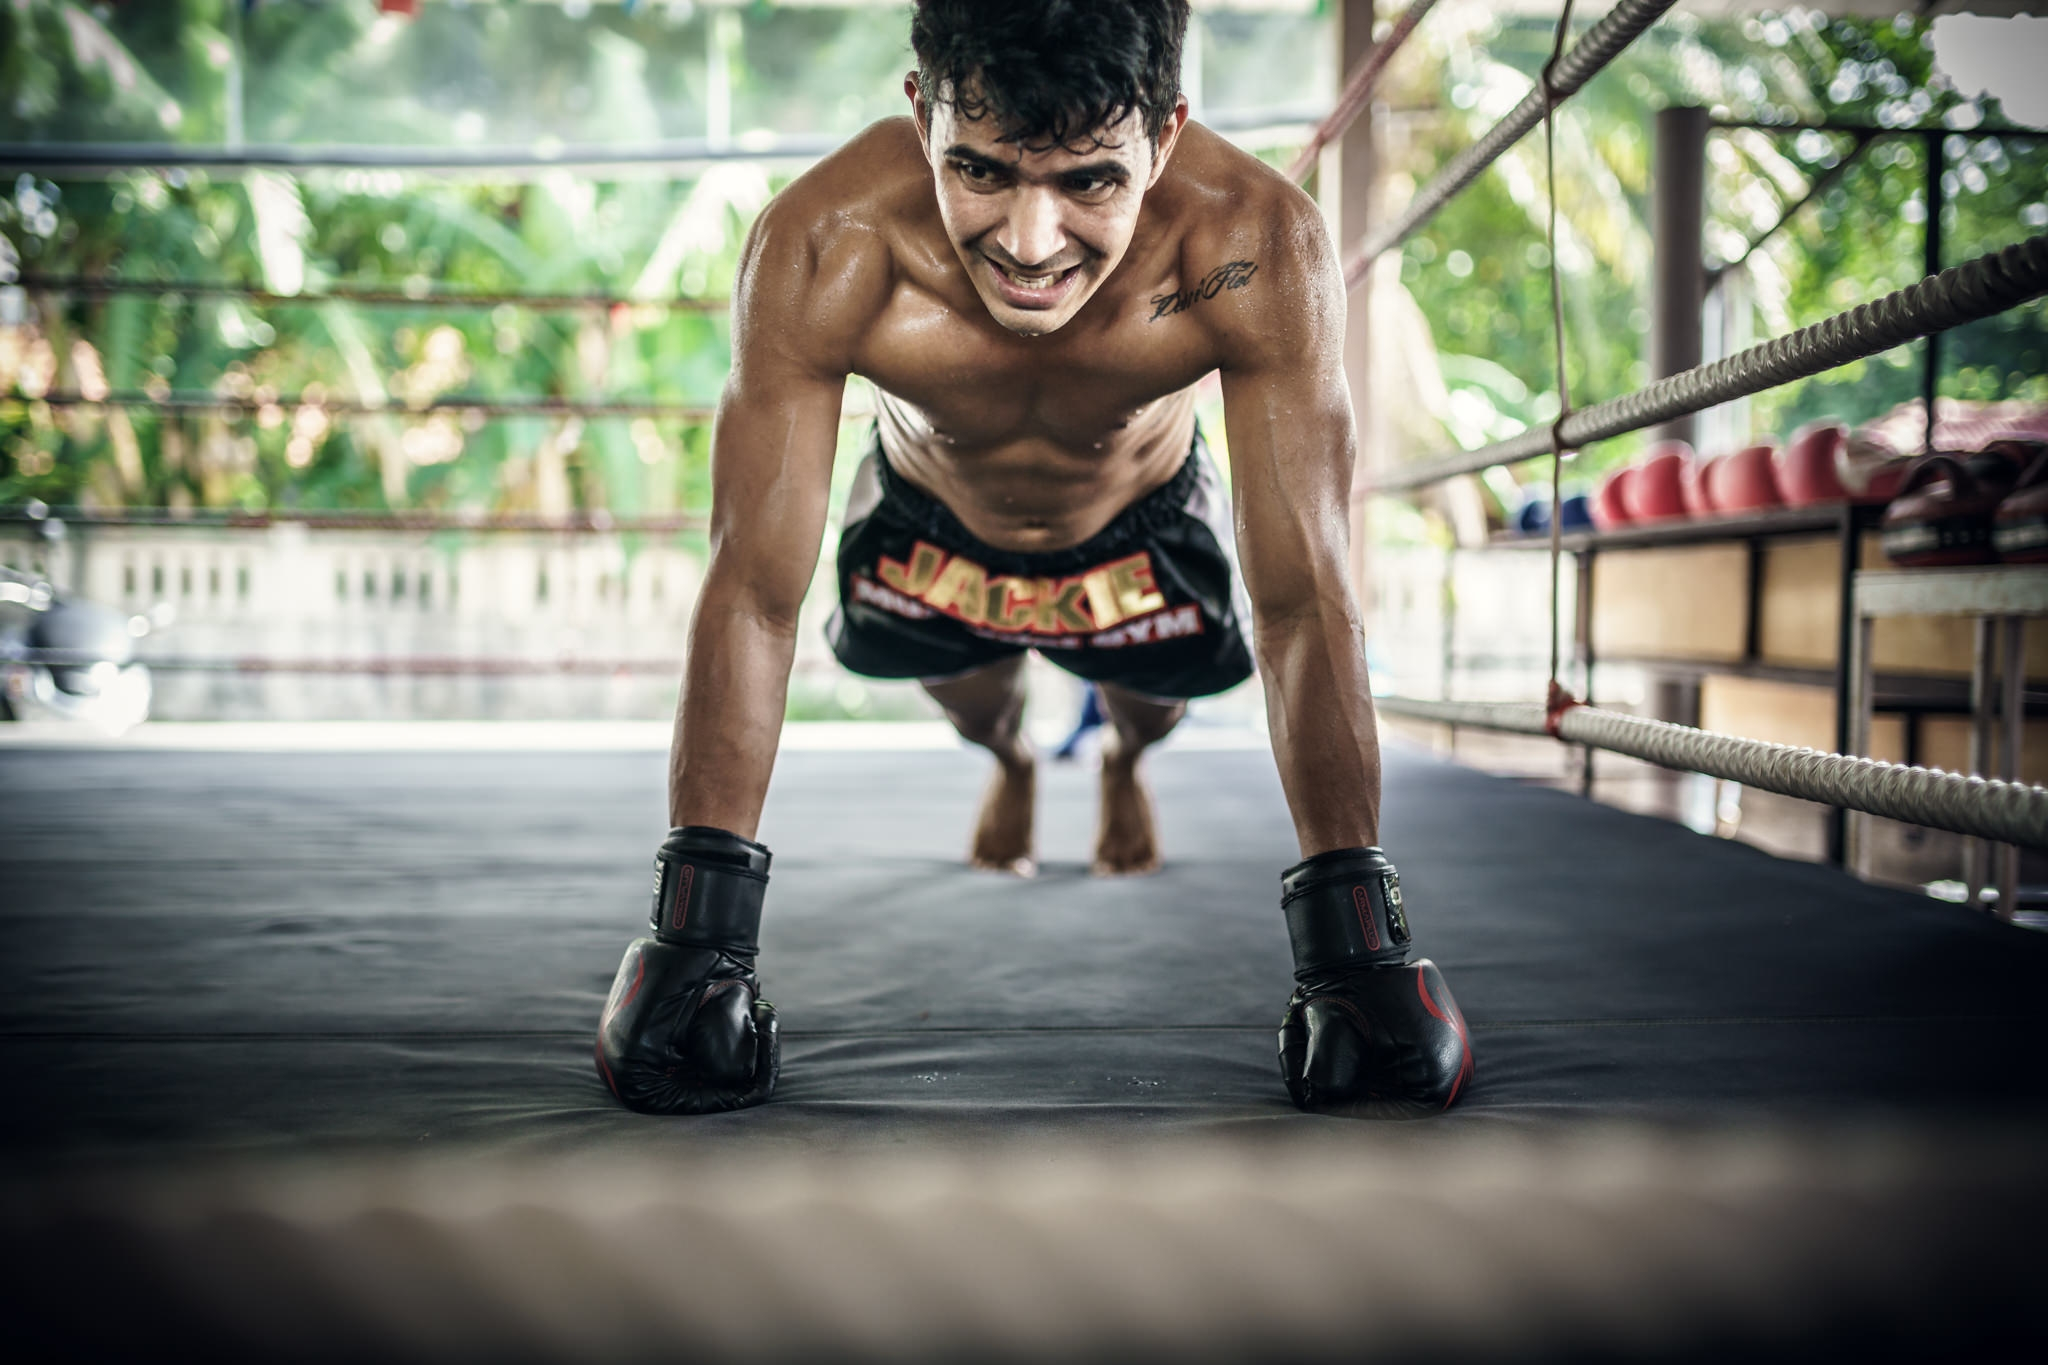 Muay thai training, Sport Photography